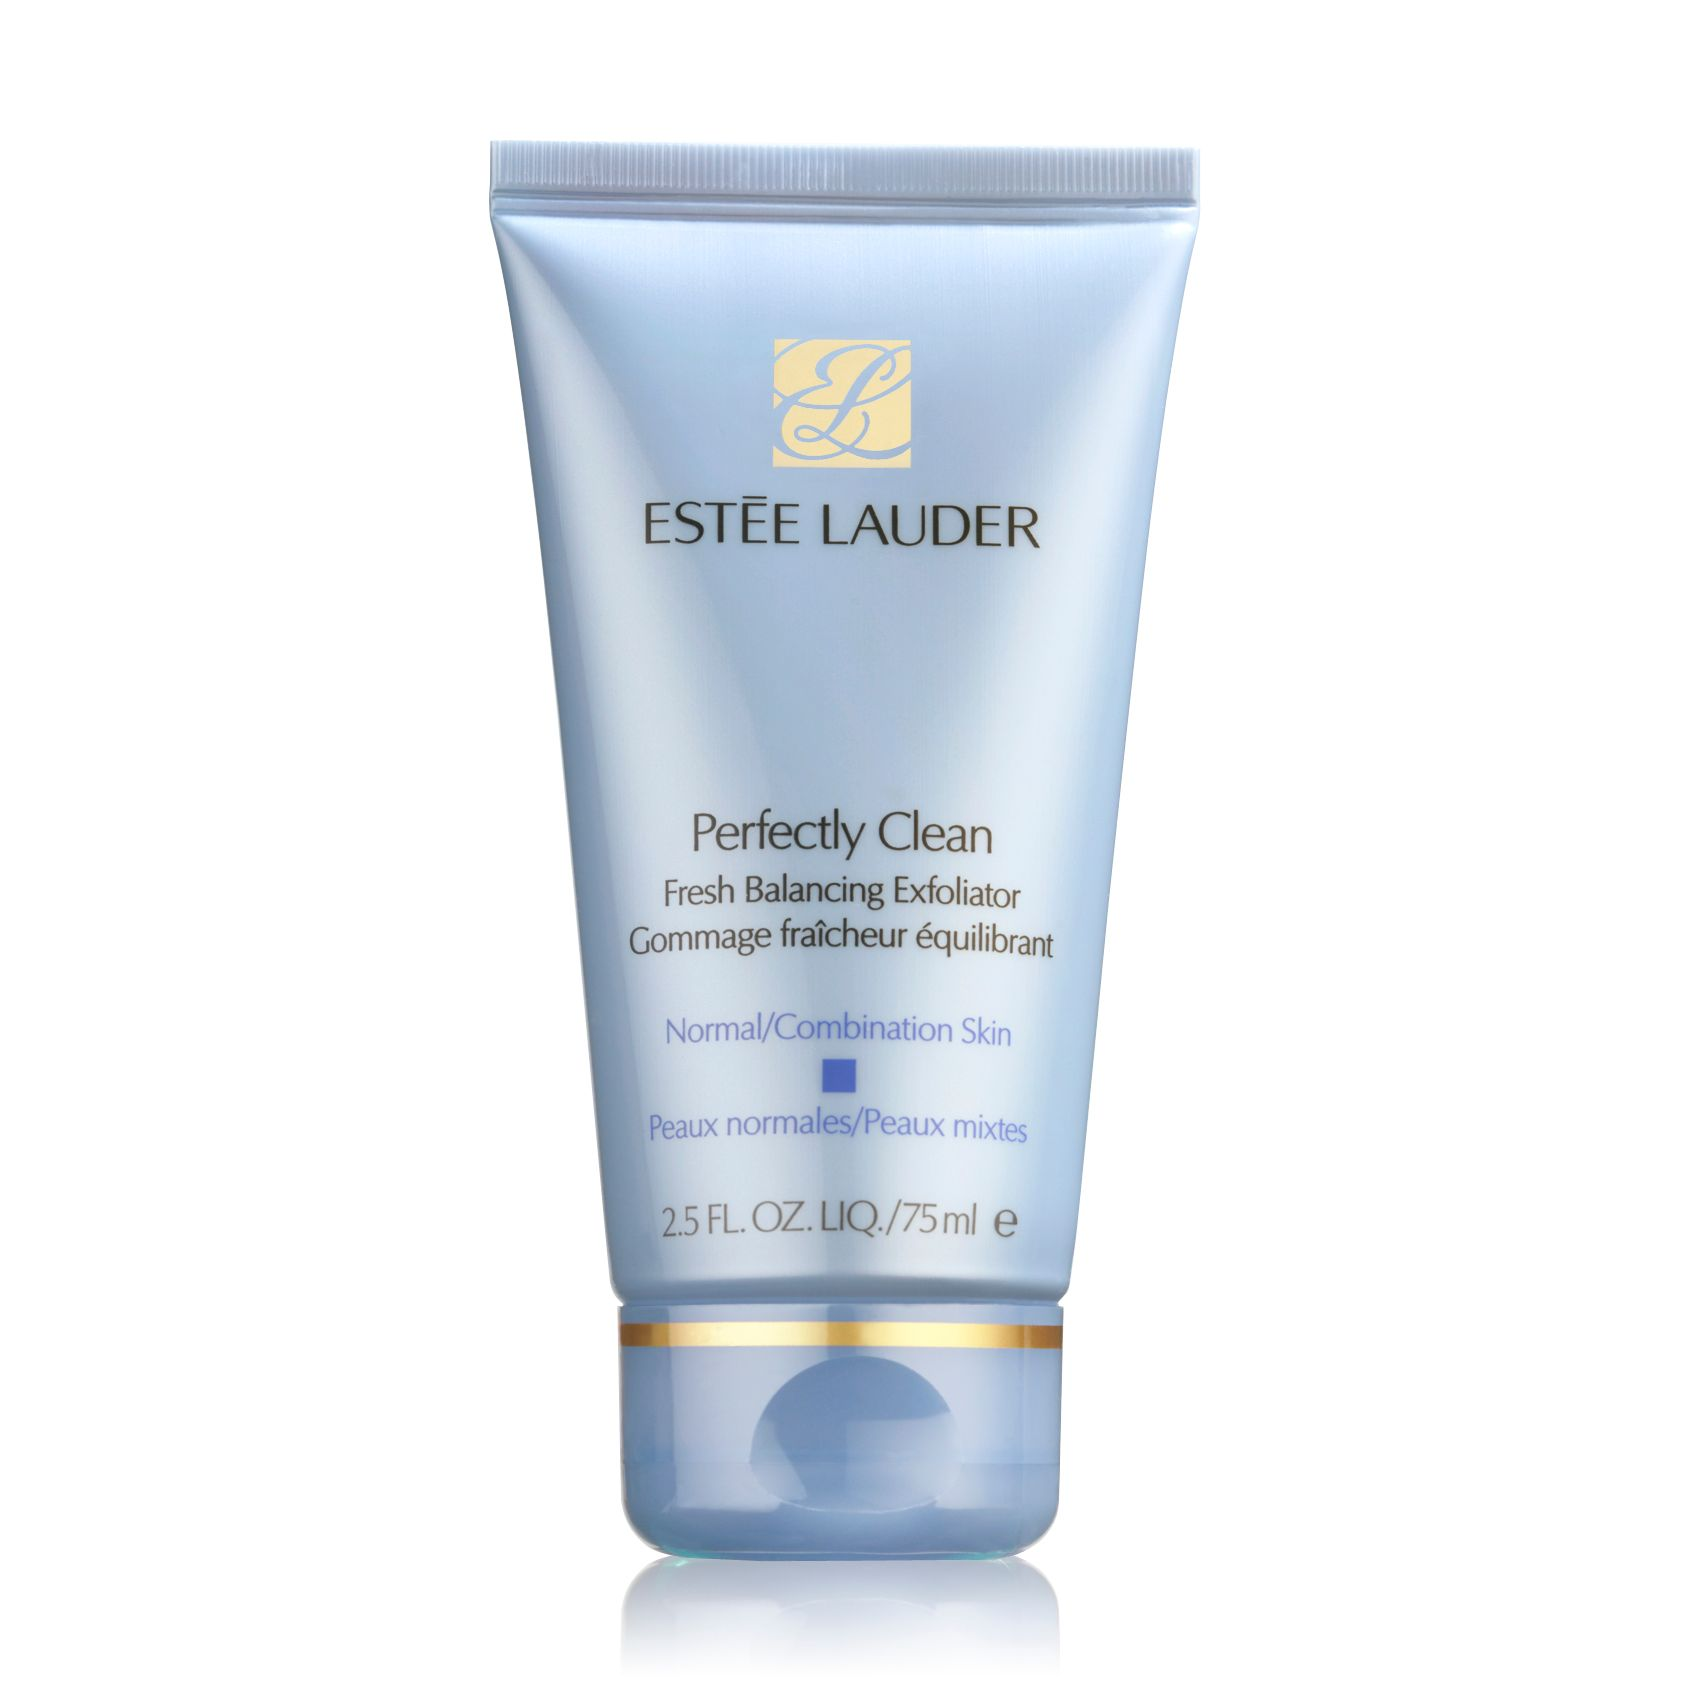 Perfectly Clean Fresh Balancing Exfoliator